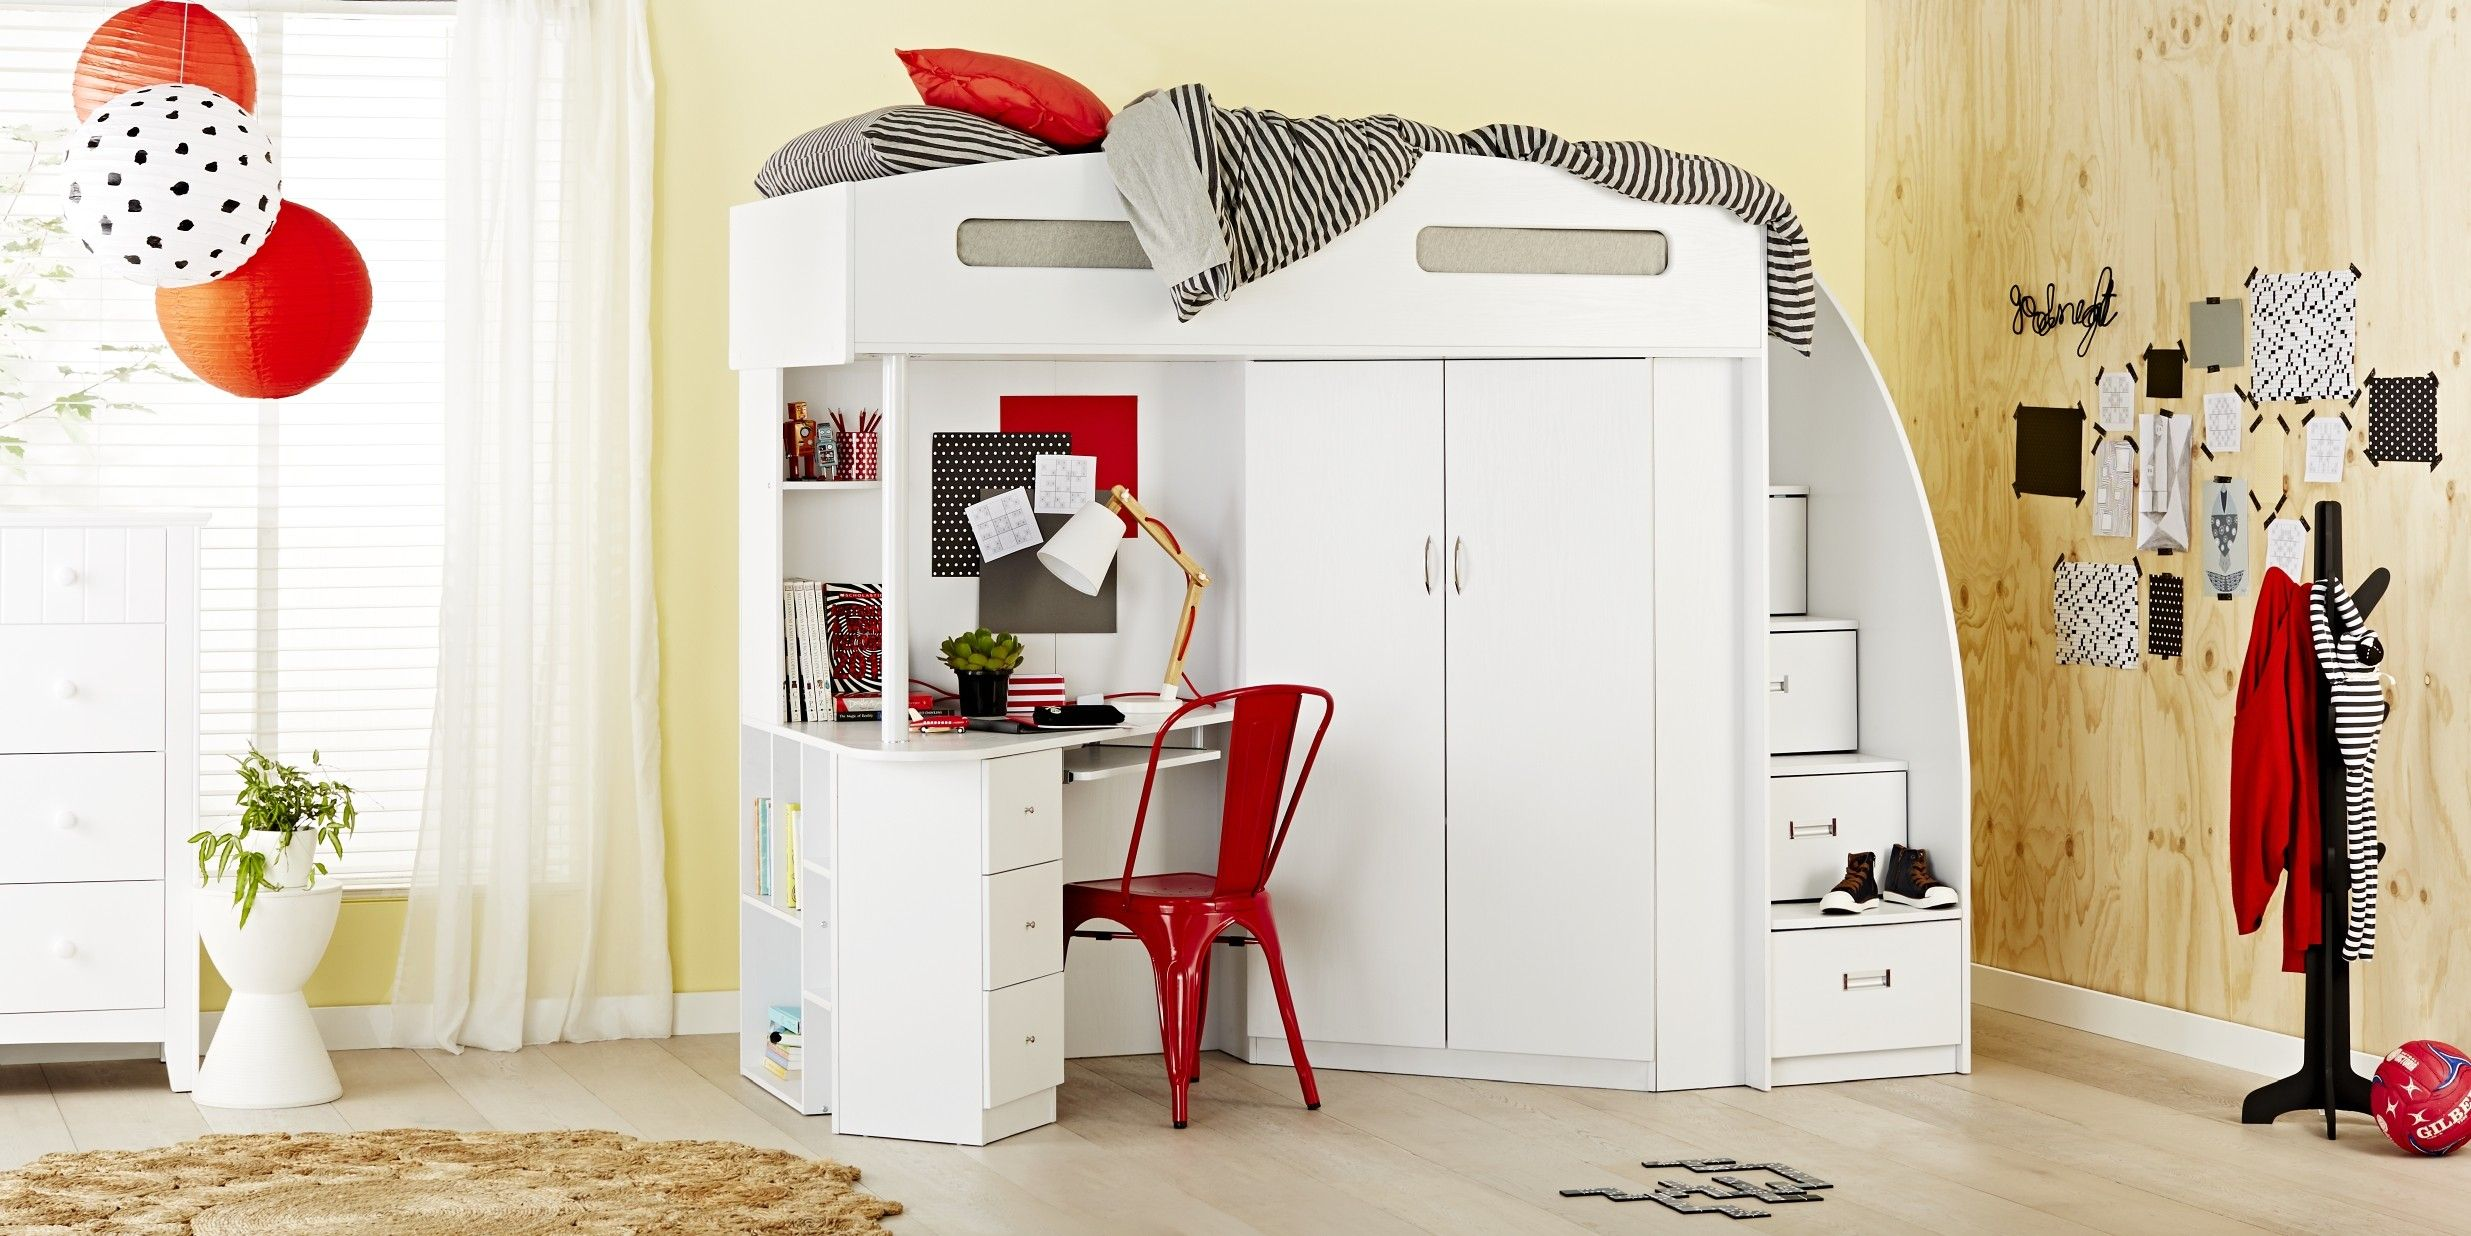 Bunk bed with desk underneath for girls - The Octavia Is The Perfect Storage Bunk And Study Desk Combo With The Added Benefit Of Hanging Space And Functional Steps Up To Bed